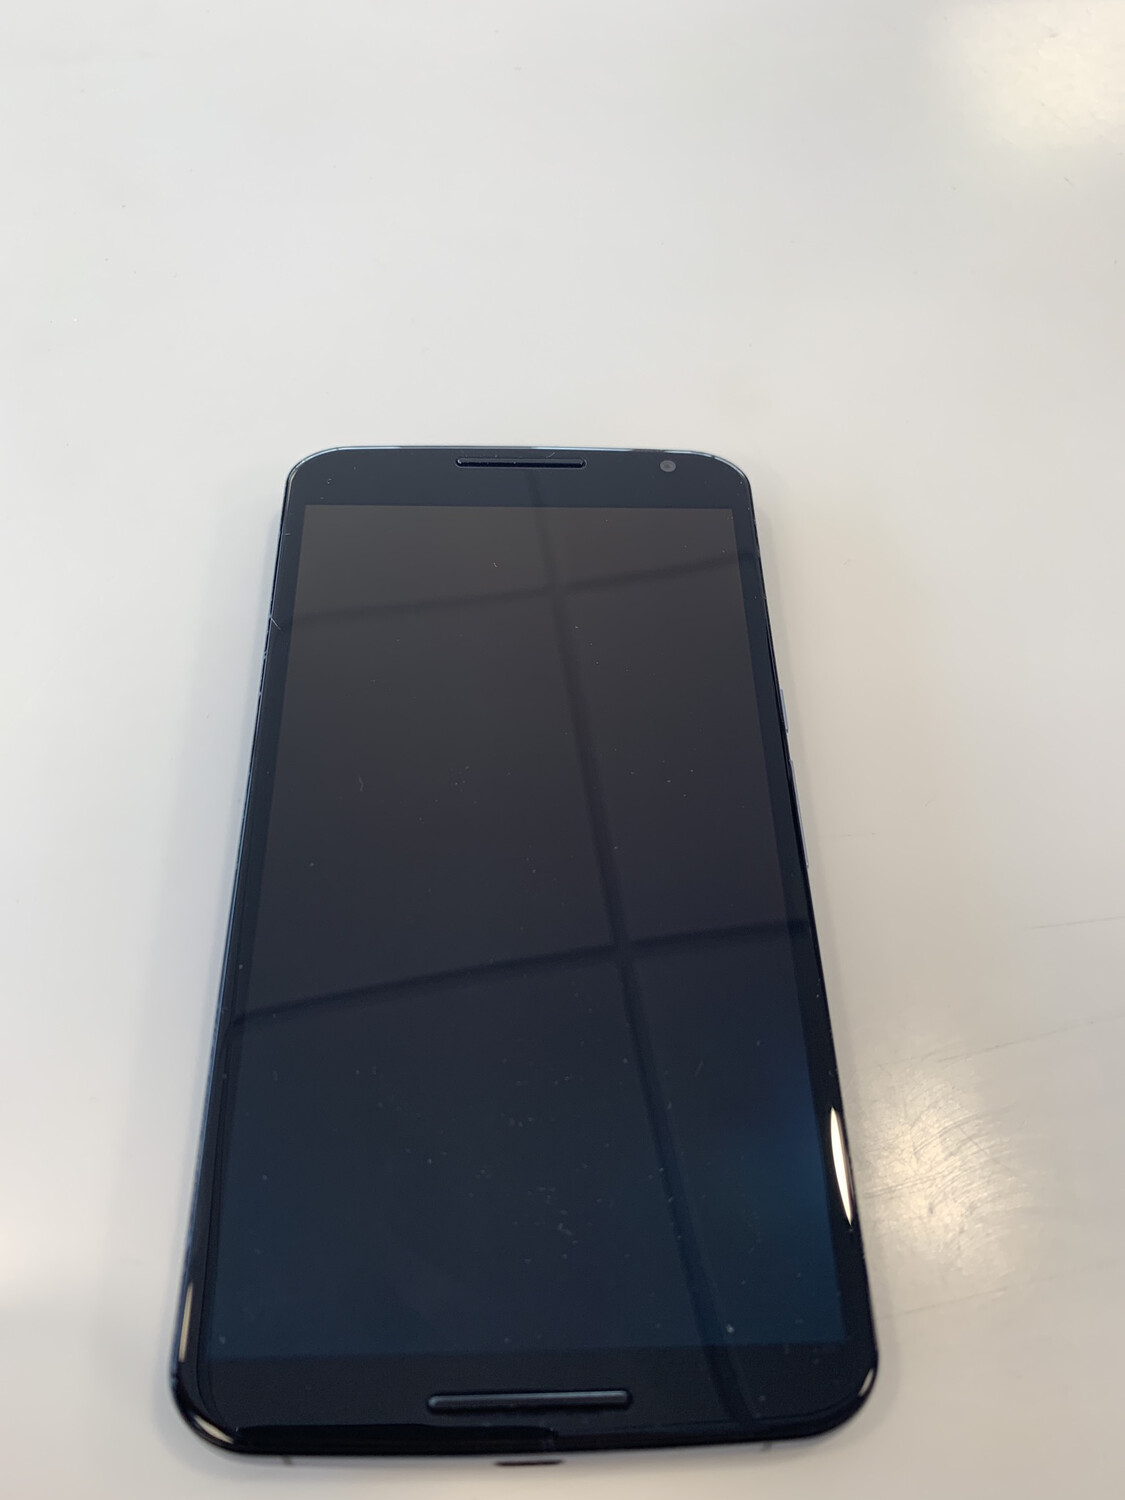 Moto Nexus 6 (works On All Carriers) Unlocked (Harry and Rock)